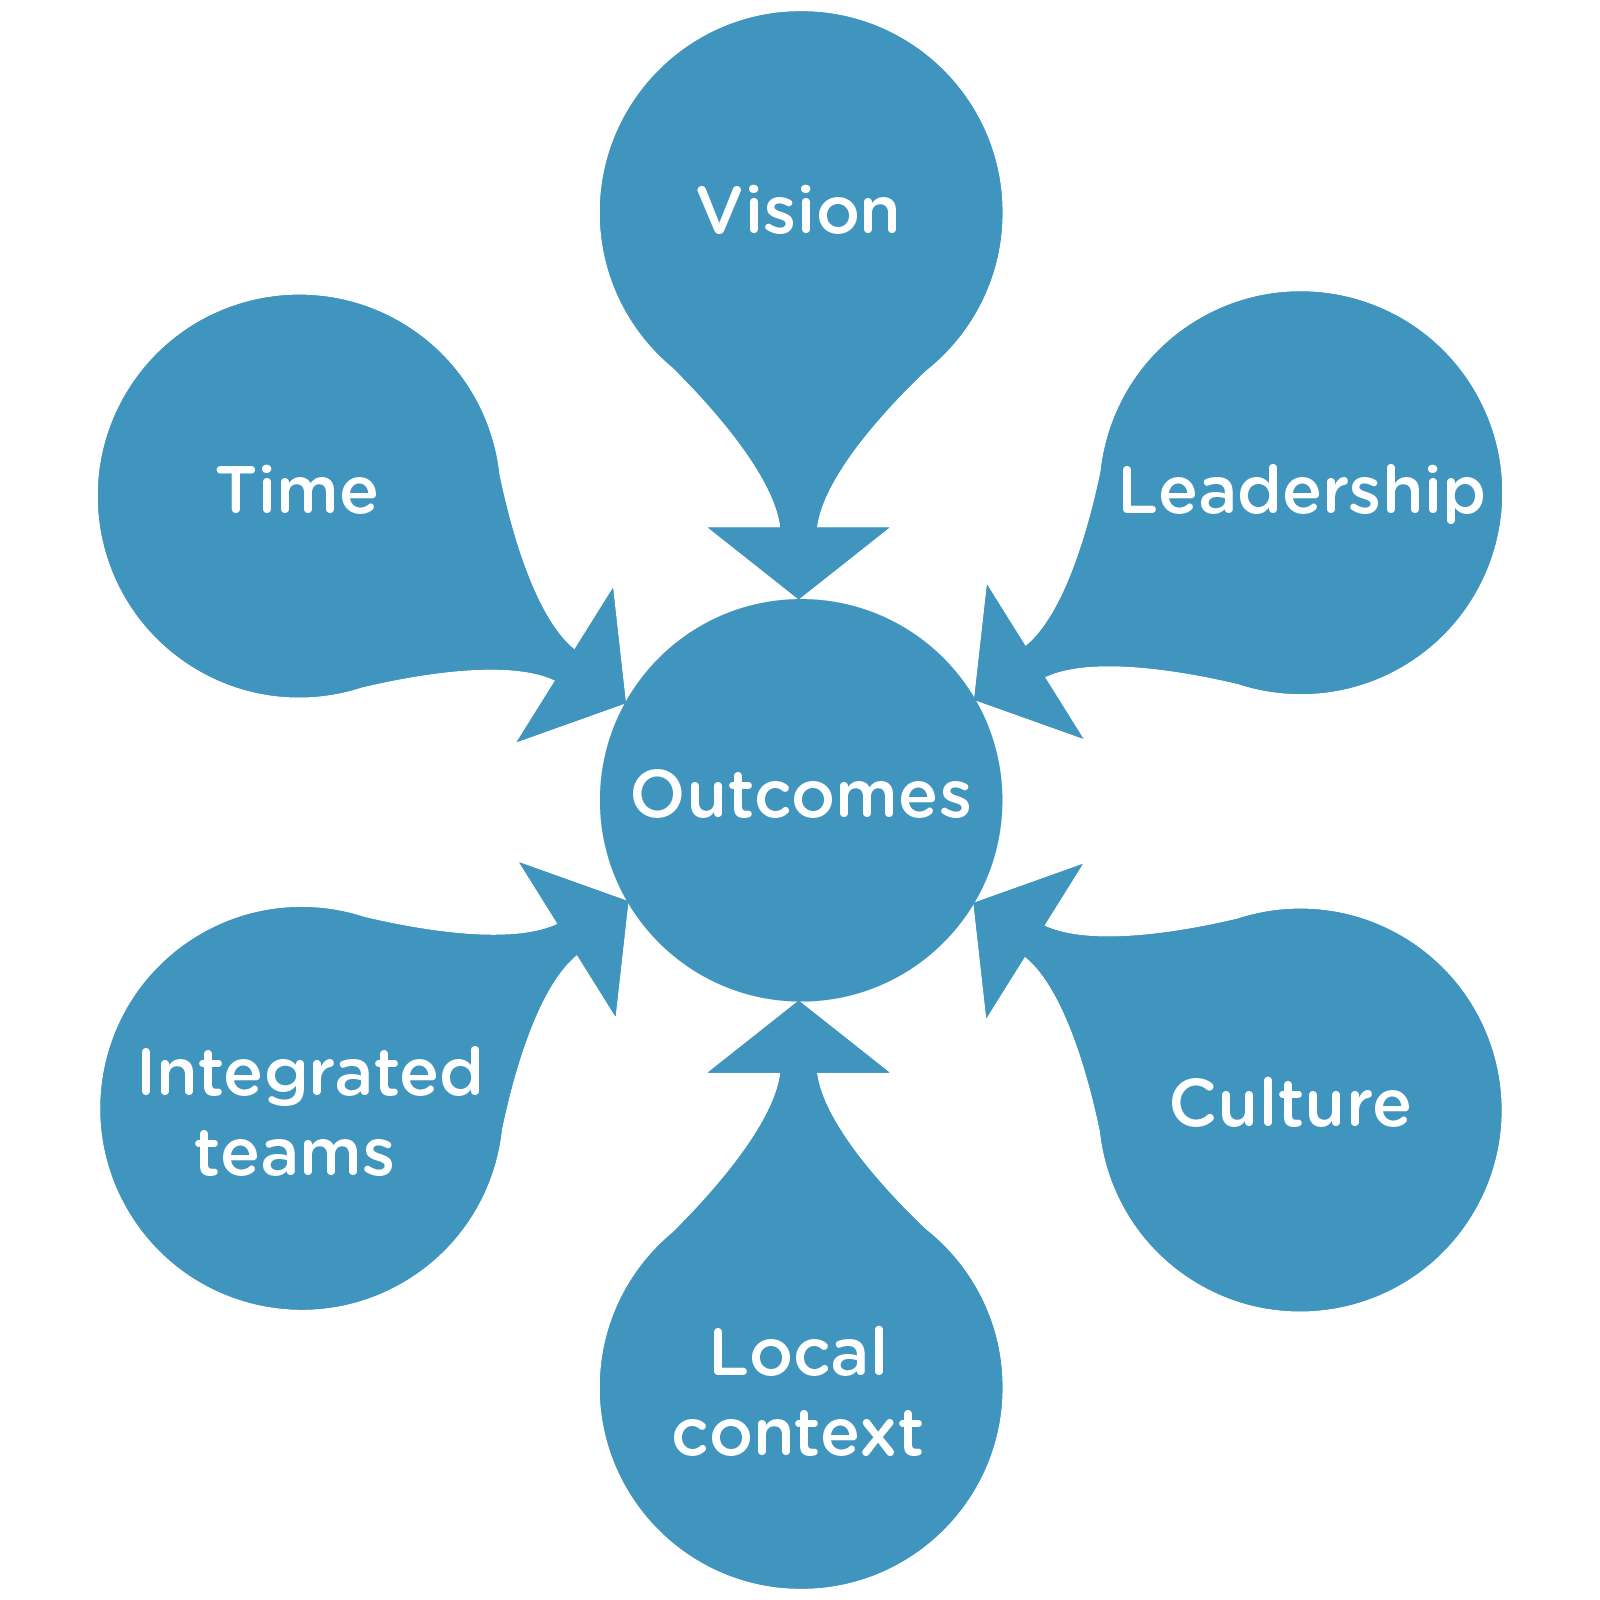 Dimensions of Outcomes diagram - Vision, Leadership,Culture,Local context,Integrated teams,Time all connecting to Outcomes at the center